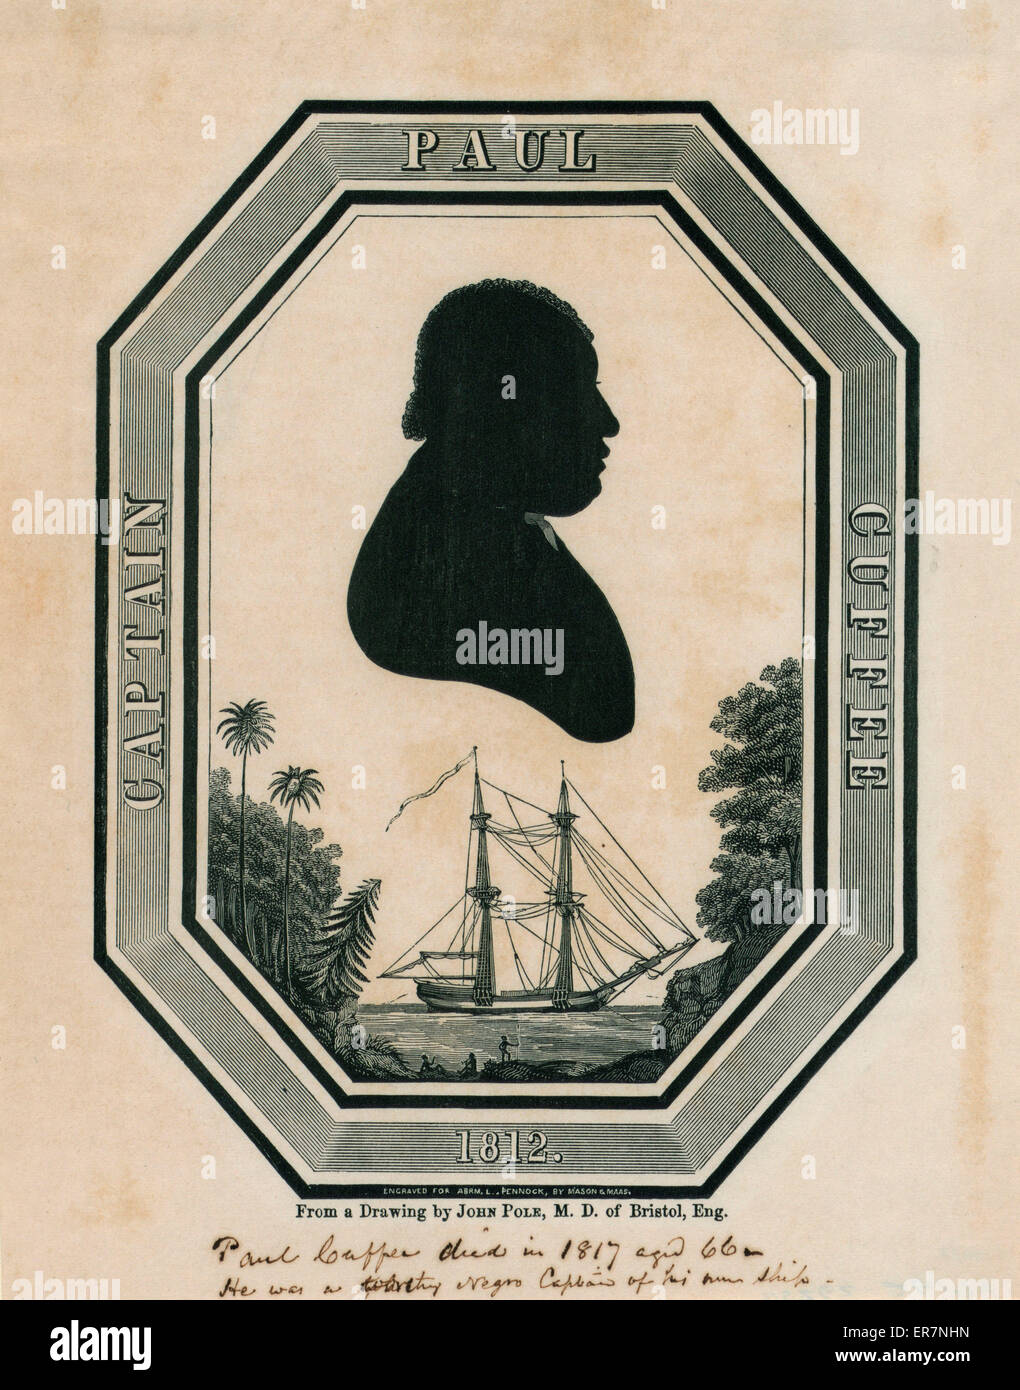 Captain Paul Cuffee 1812. Print shows a silhouette head-and-shoulders portrait of Paul Cuffe, a prosperous businessman - Stock Image